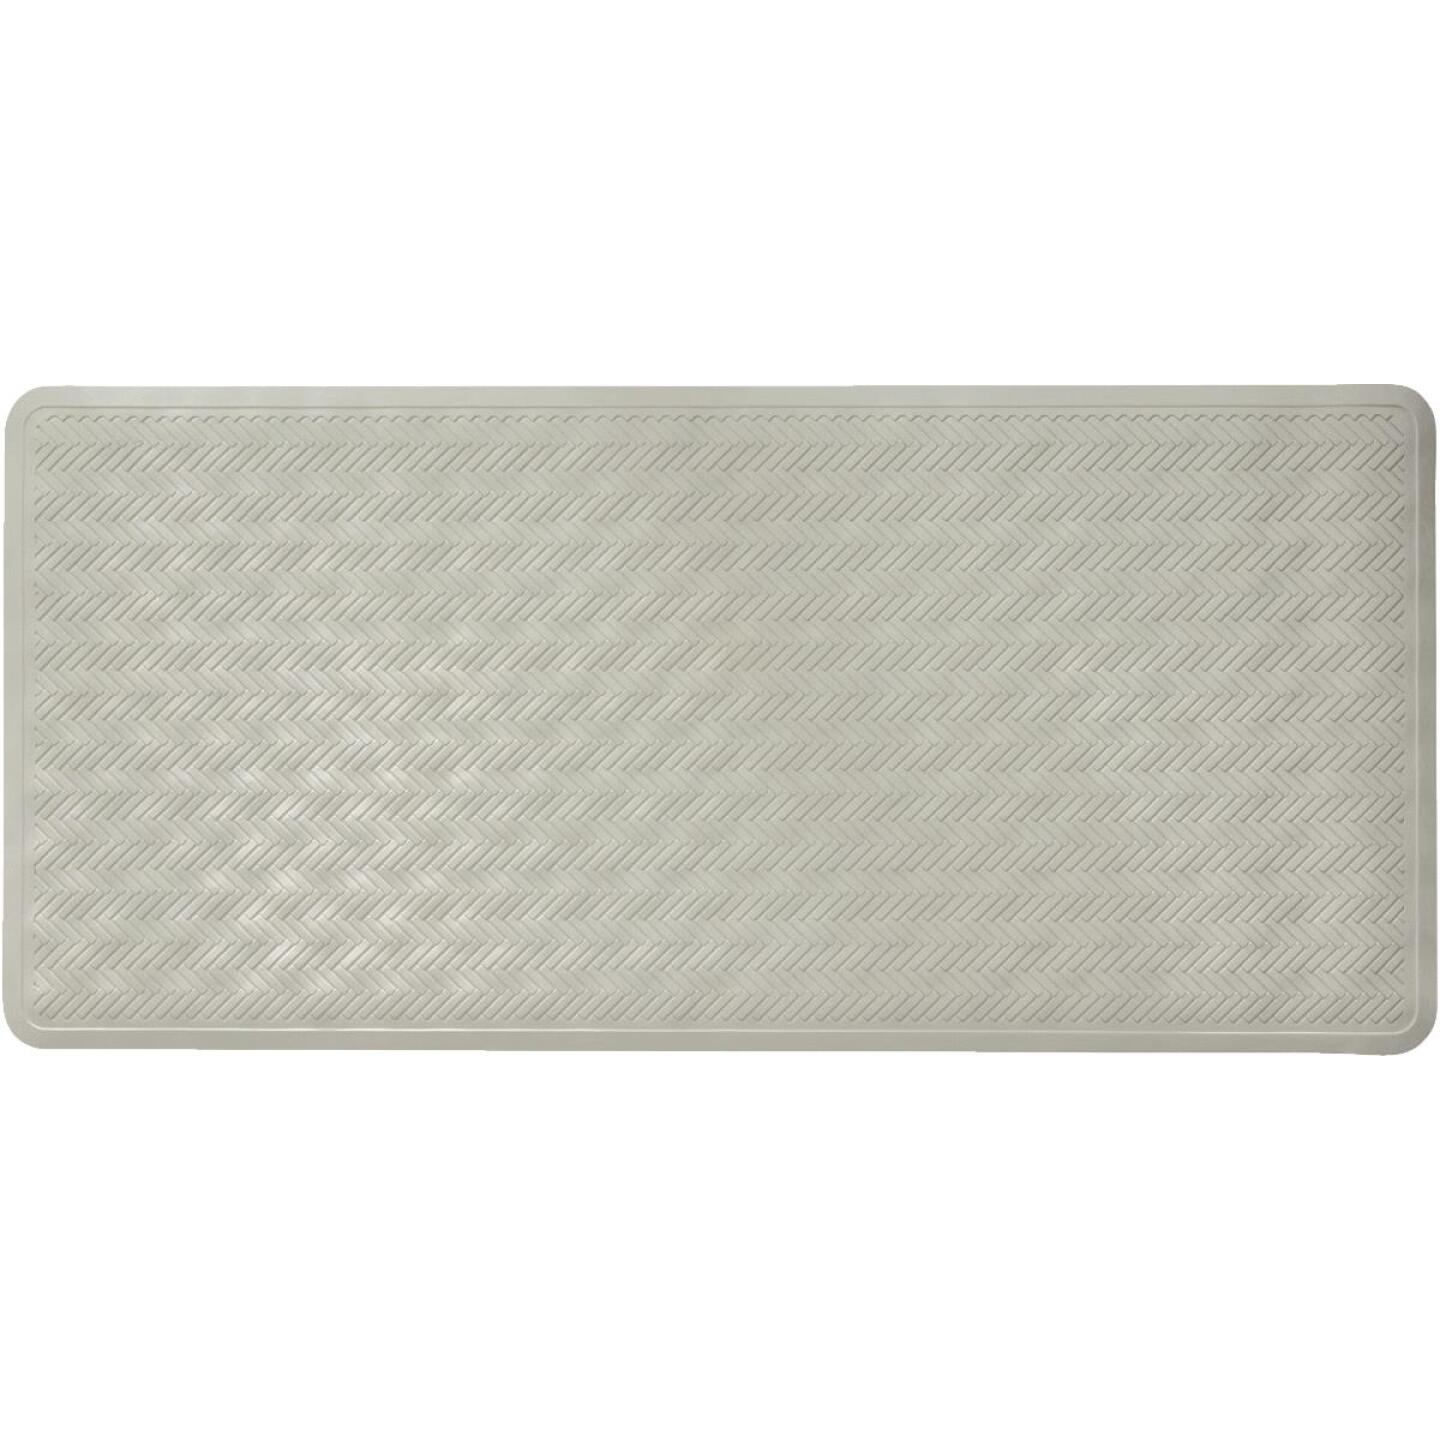 iDesign Chelsea 17 In. x 36 In. Gray Rubber Bath Mat Image 1